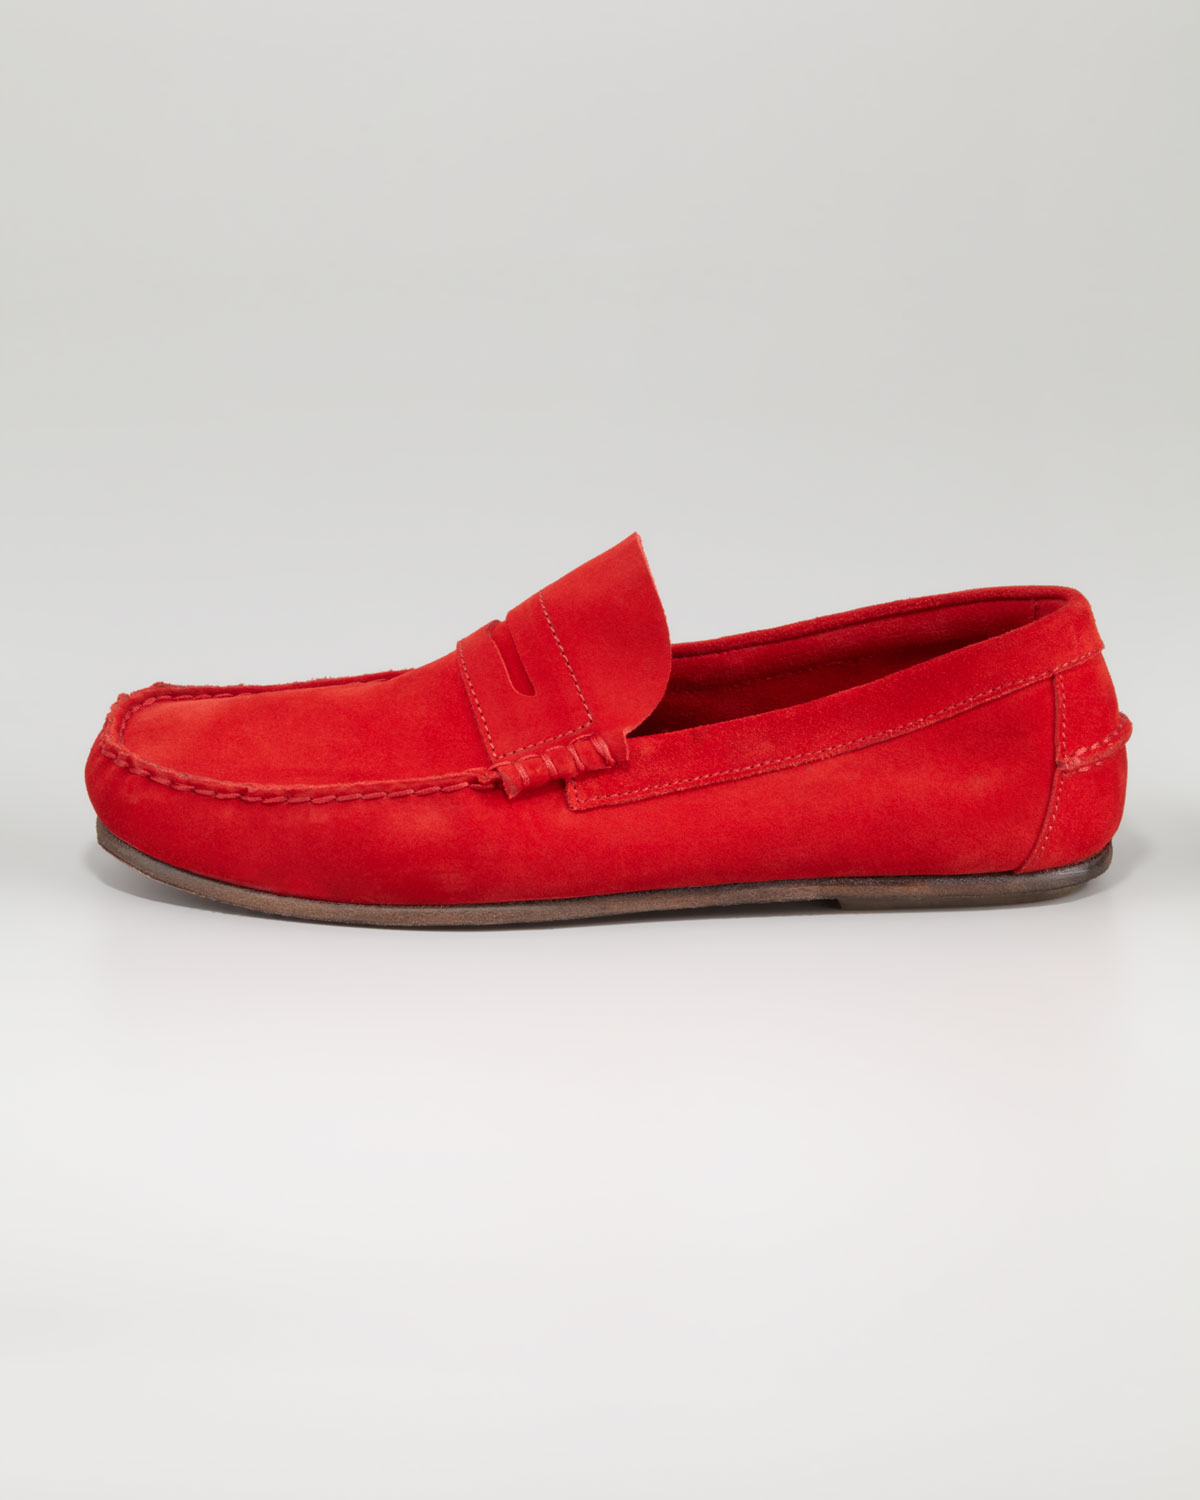 c65522601d0 Lyst - Florsheim by Duckie Brown Suede Penny Loafer Red in Red for Men